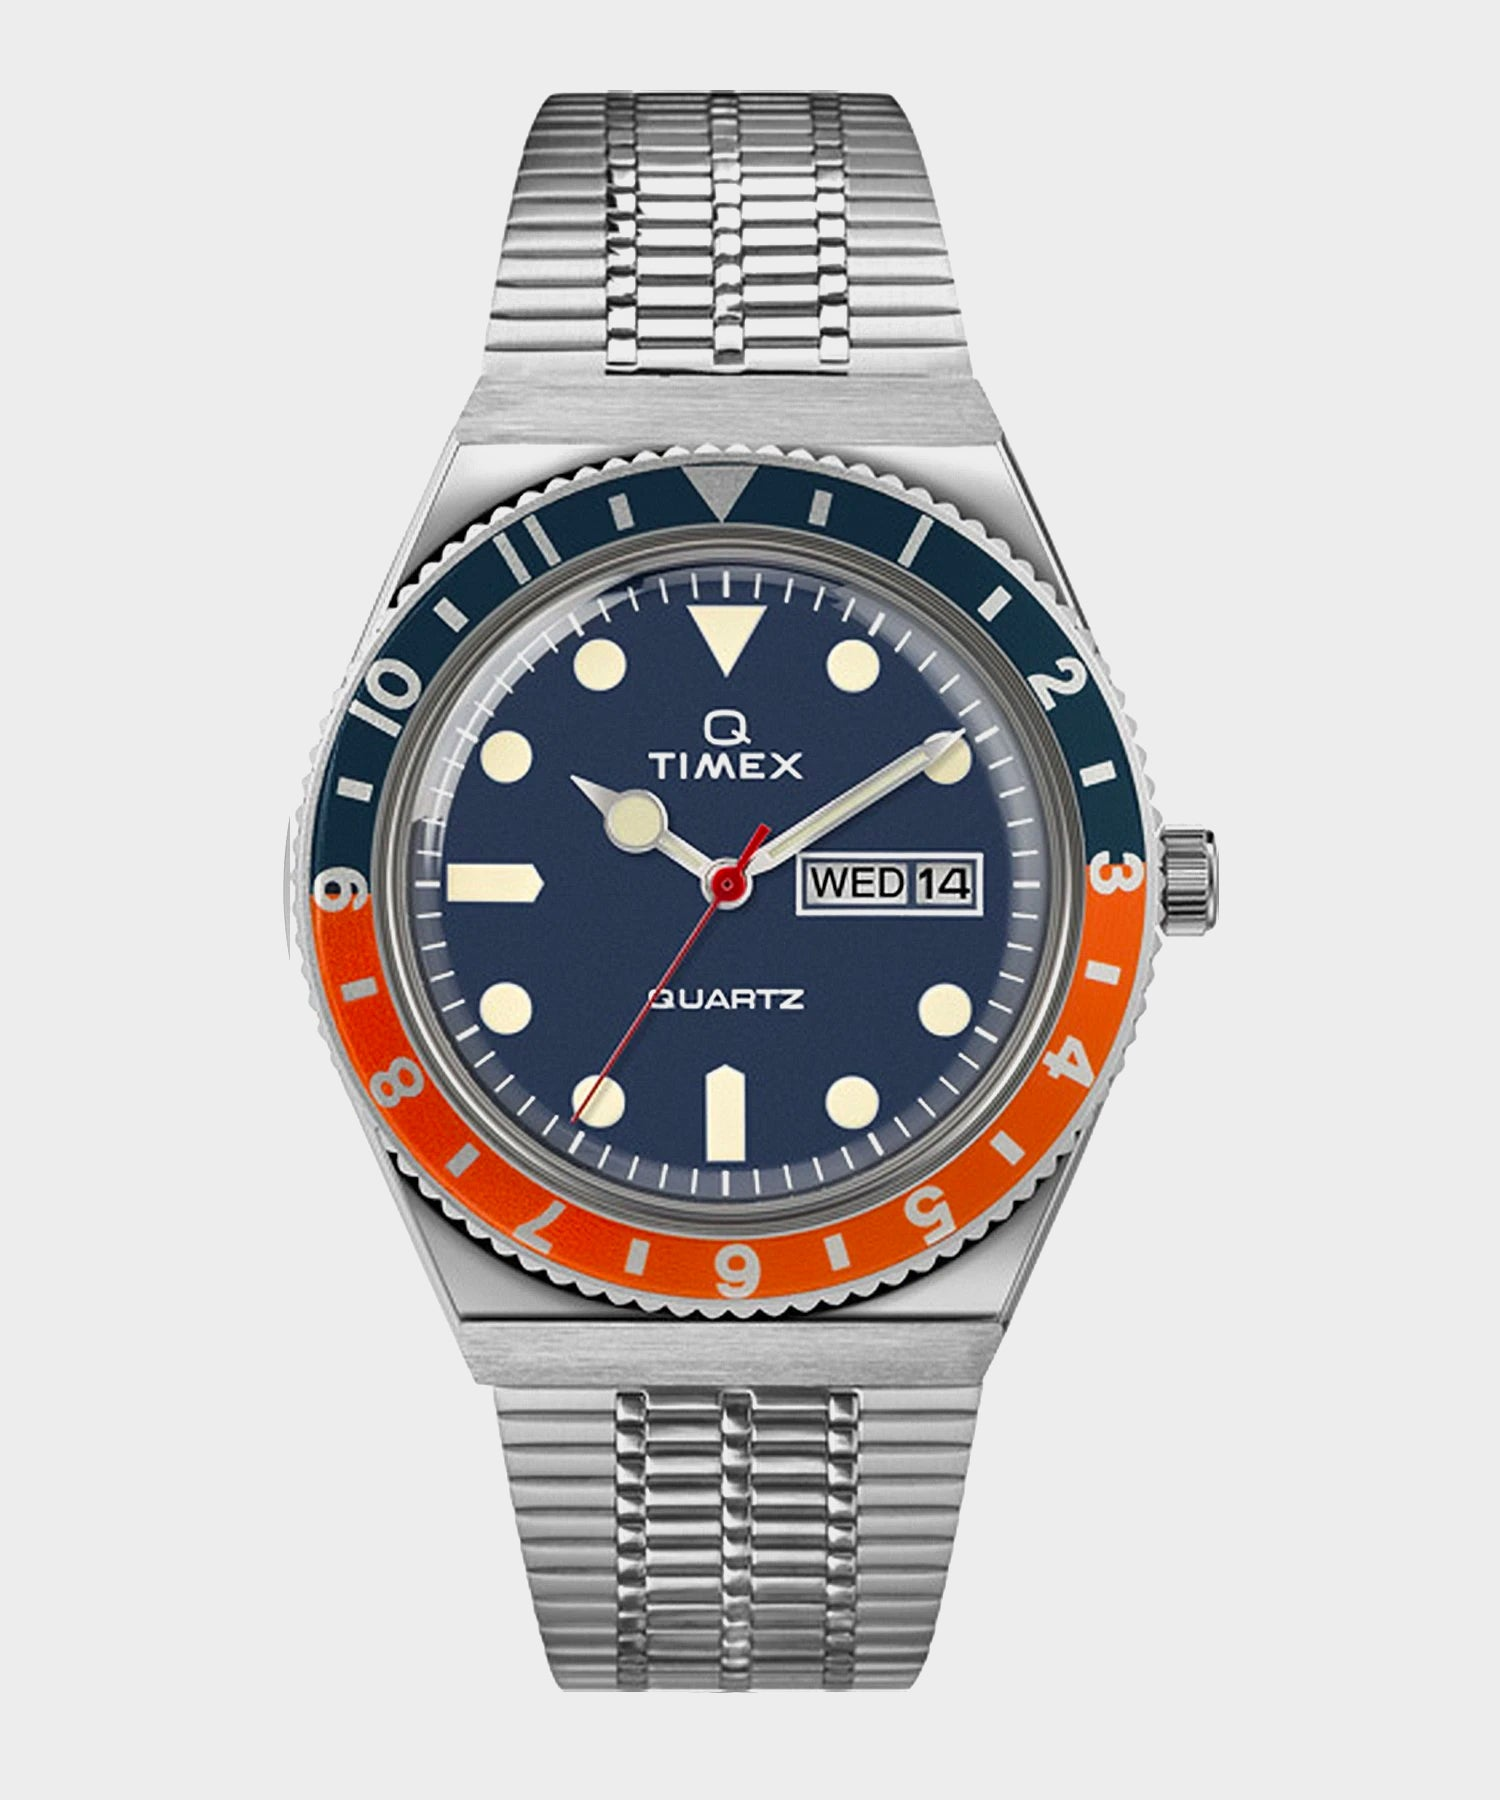 Q Timex Reissue Navy Dial with Navy/Orange Ring Bracelet Watch